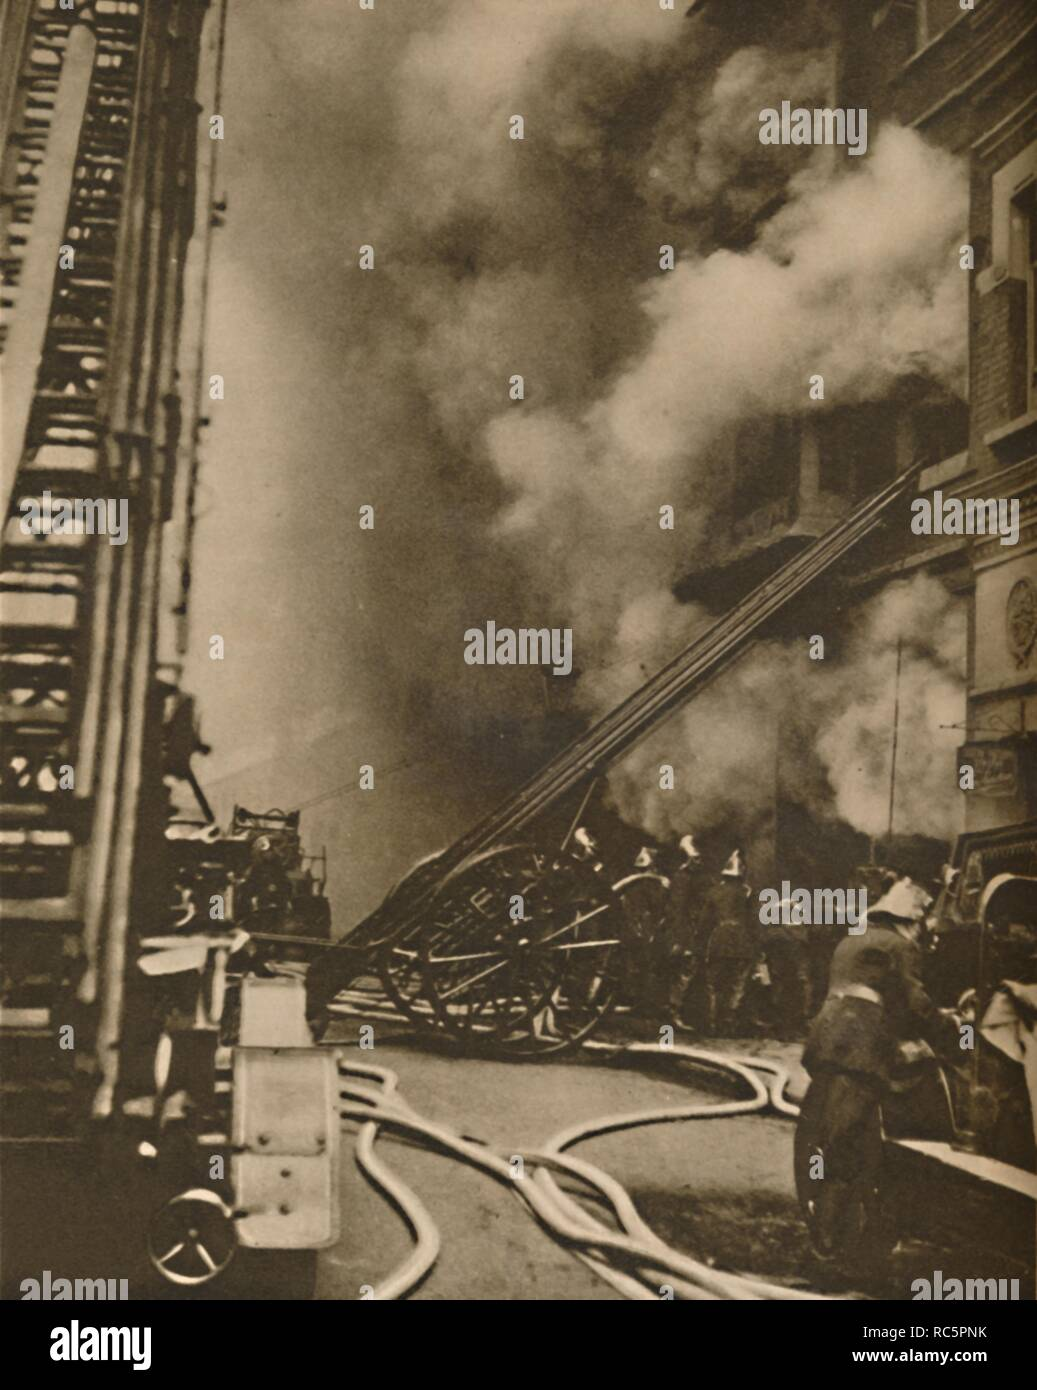 """'Subduing a Conflagration in a Narrow City Street', c1935. Fire brigade at the scene of a fire in London, with a ladder on wheels. From """"Wonderful London, Volume 1"""", edited by Arthur St John Adcock. [The Fleetway House, London, c1935] - Stock Image"""